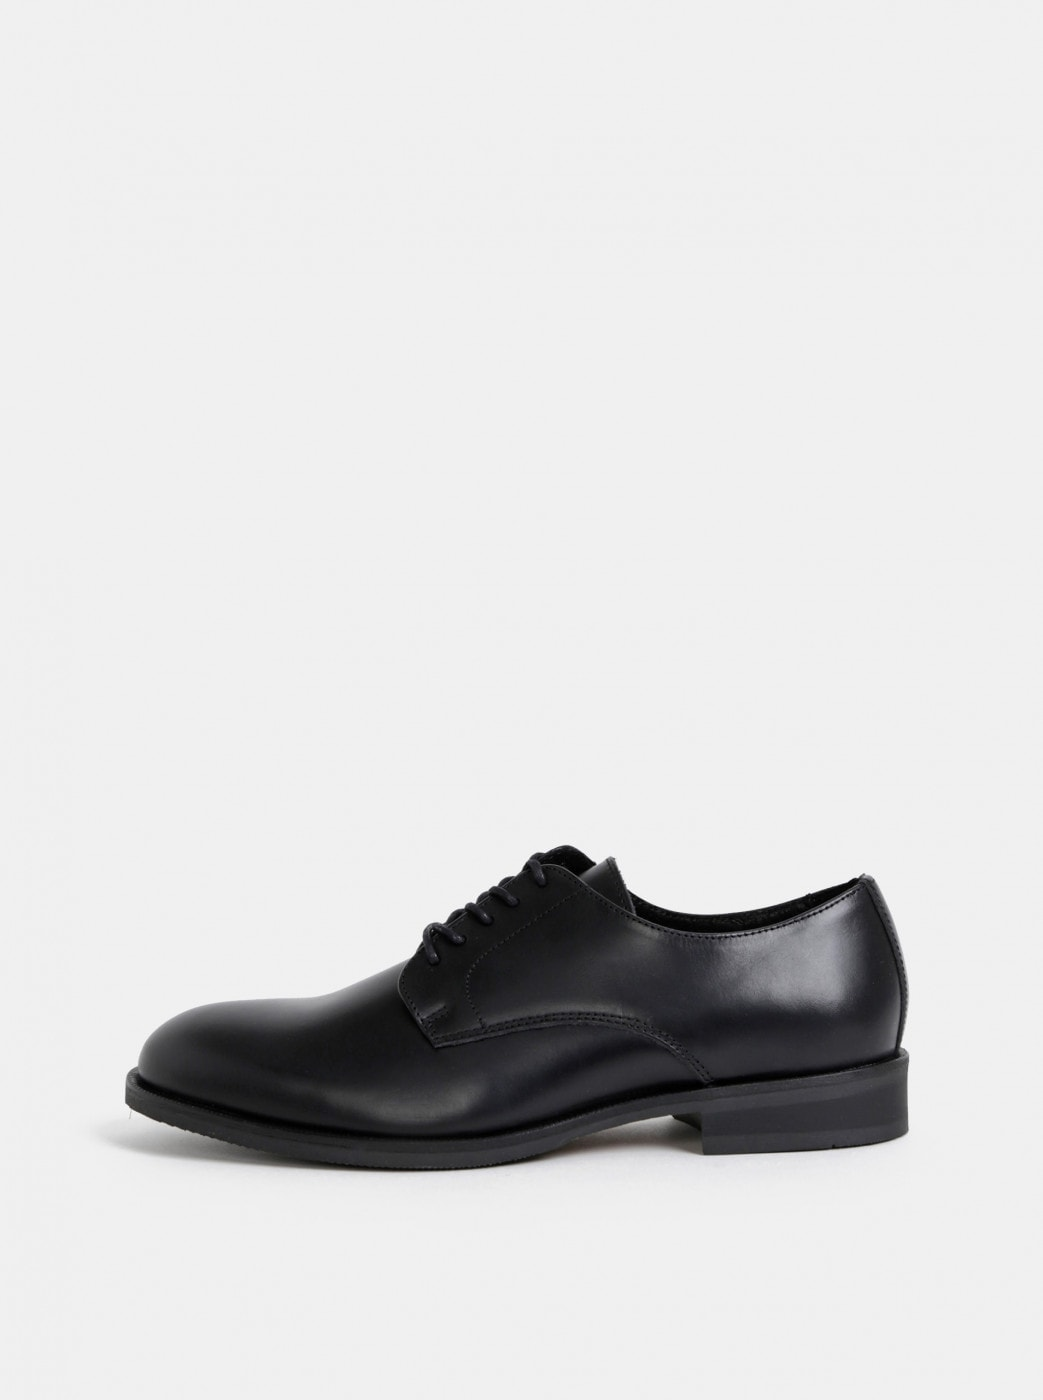 Black Leather Shoes Selected By Homme Louis